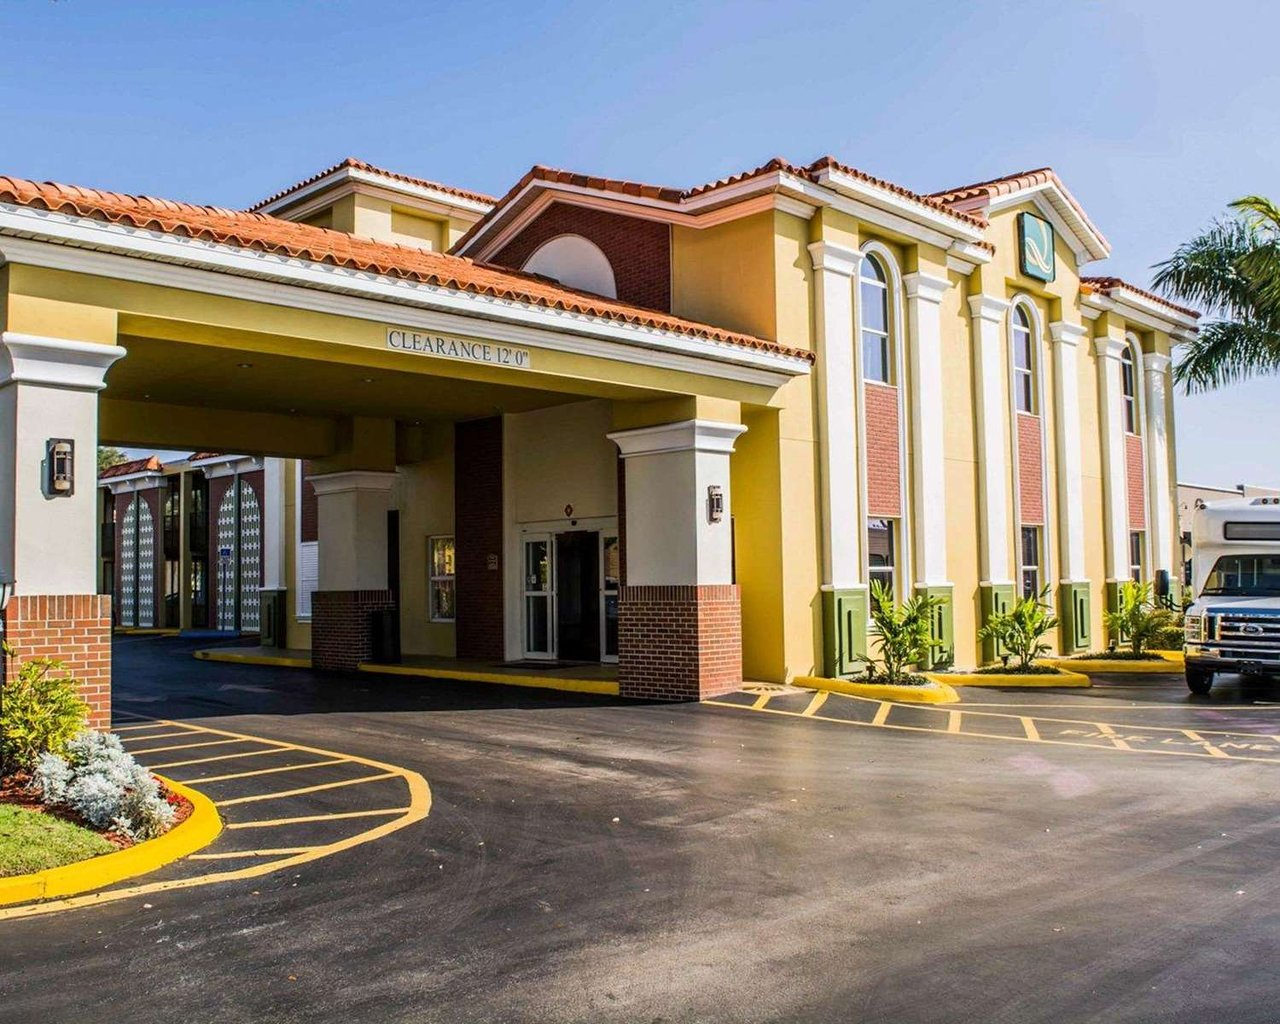 the 5 best tampa cruise port hotels jun 2019 with prices rh tripadvisor com